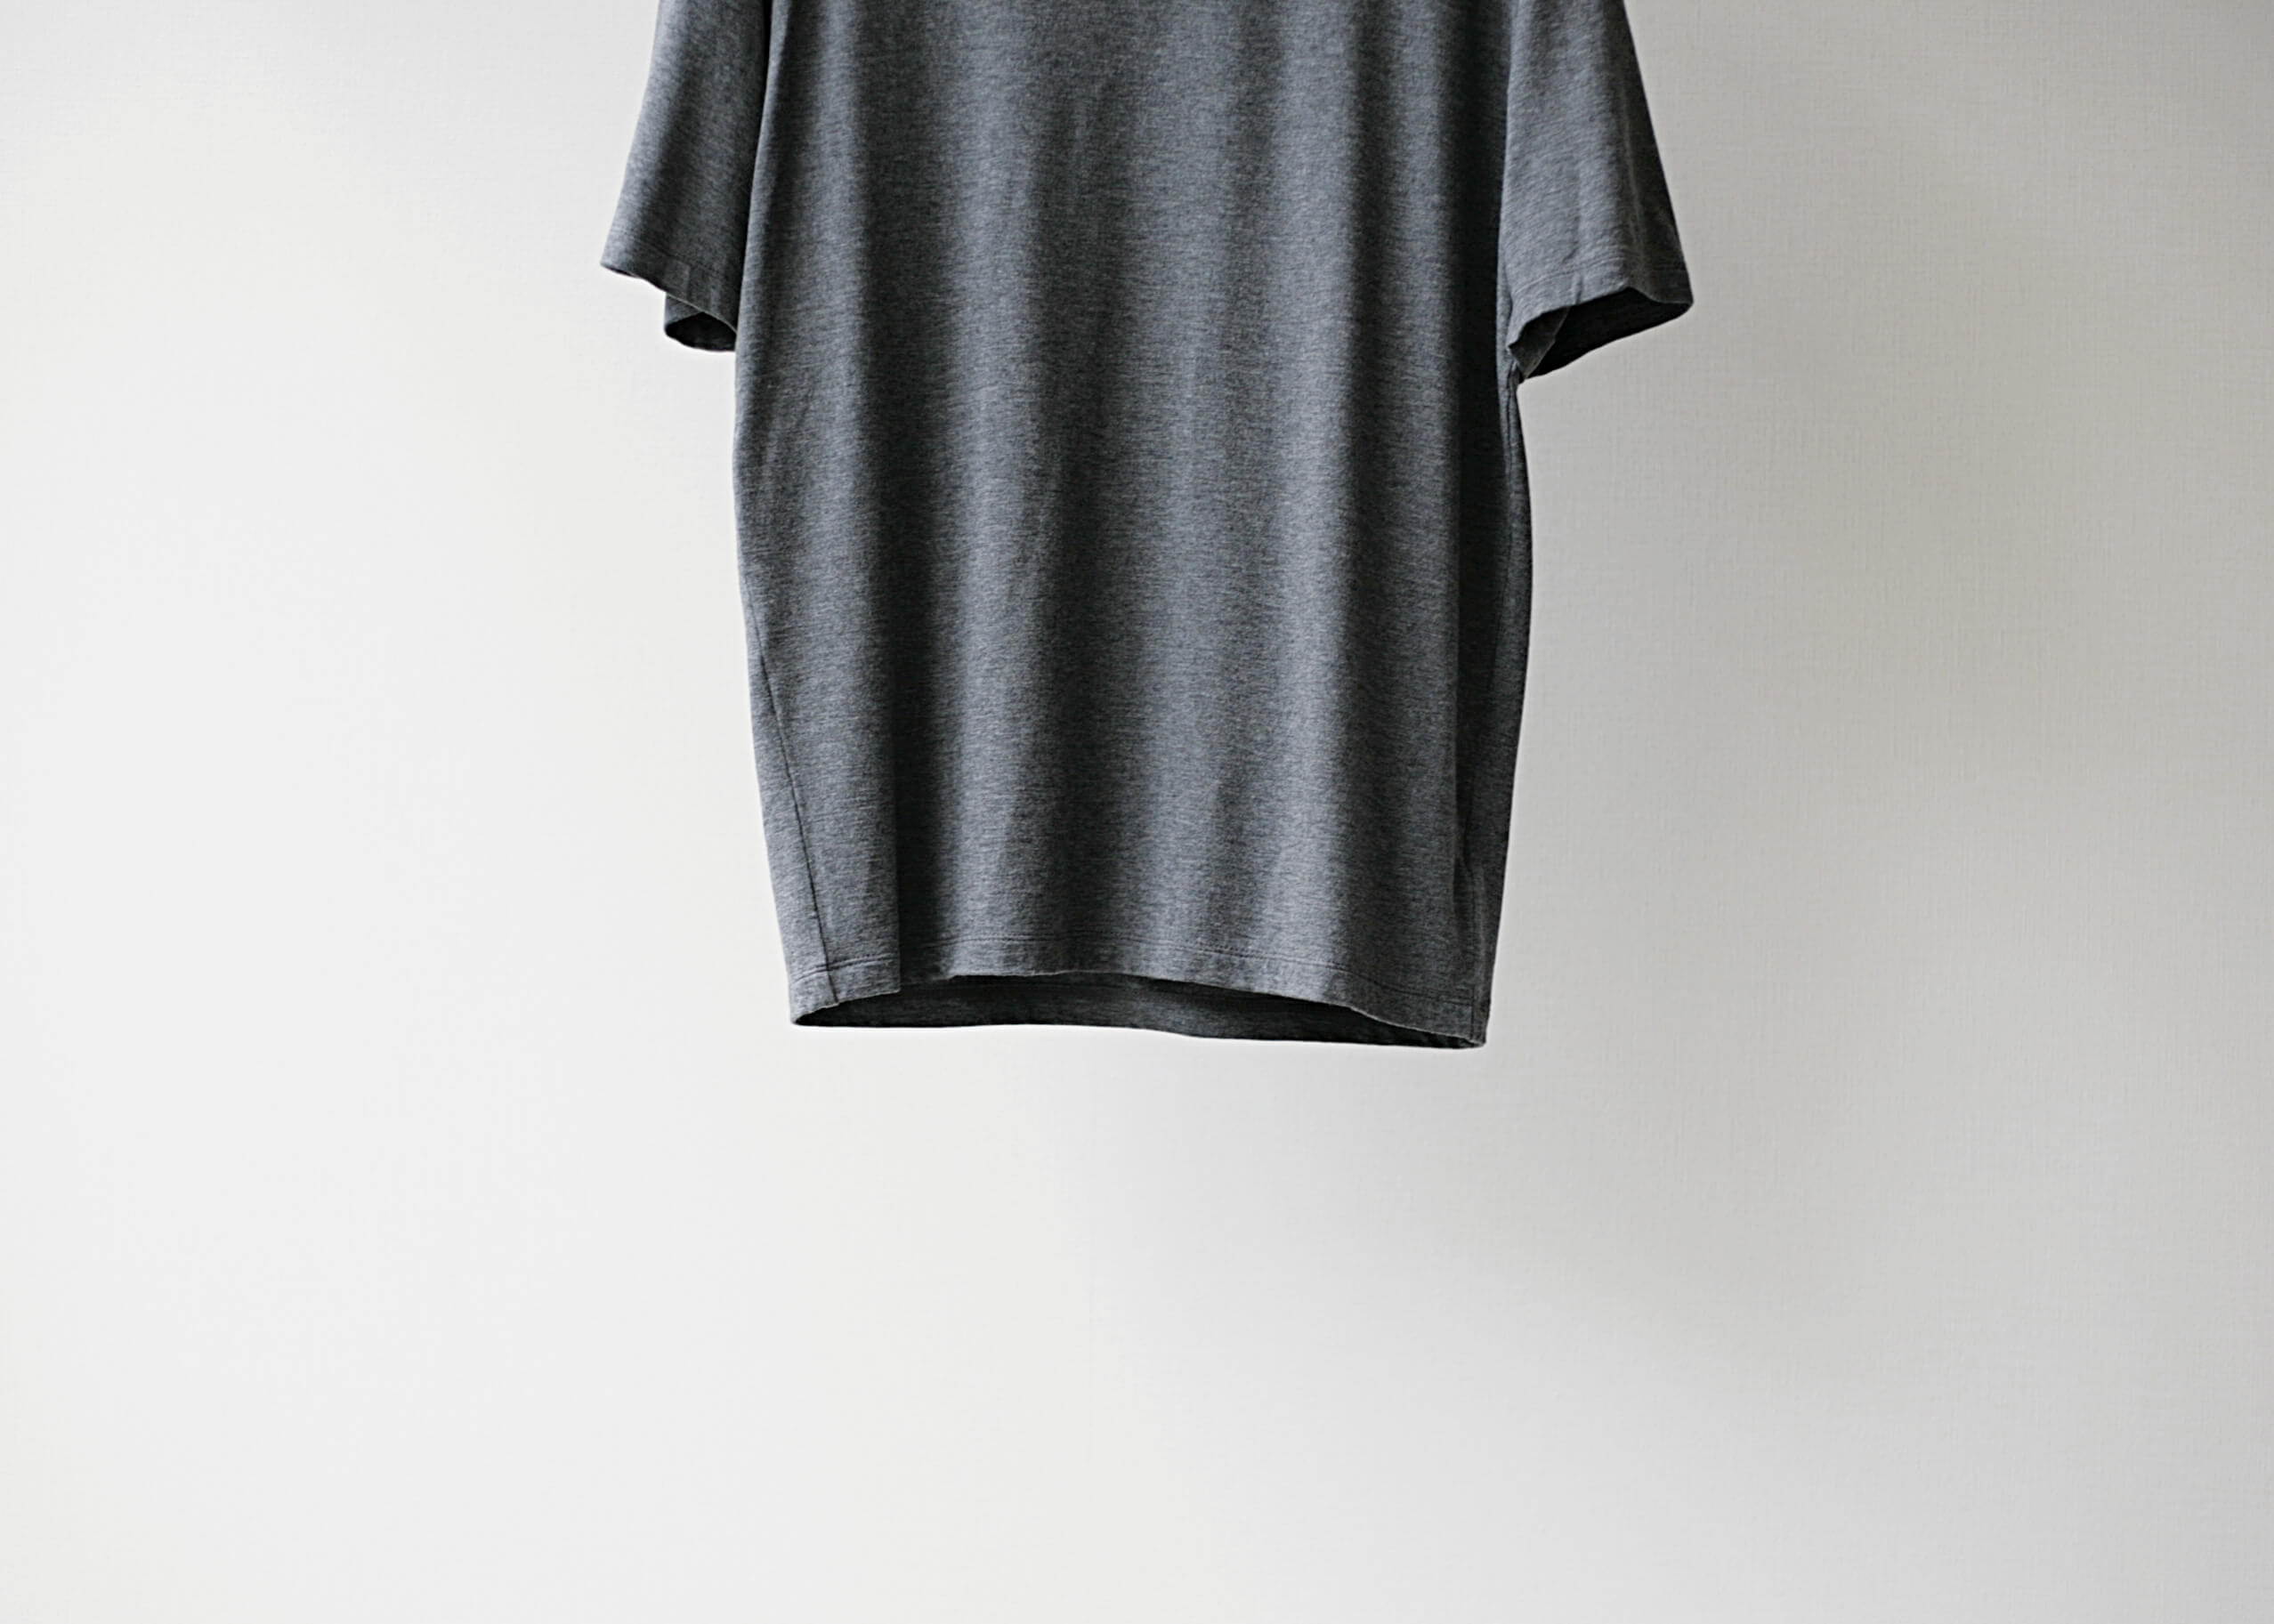 lamond tencel washable s/s gray 正面下半身アップ